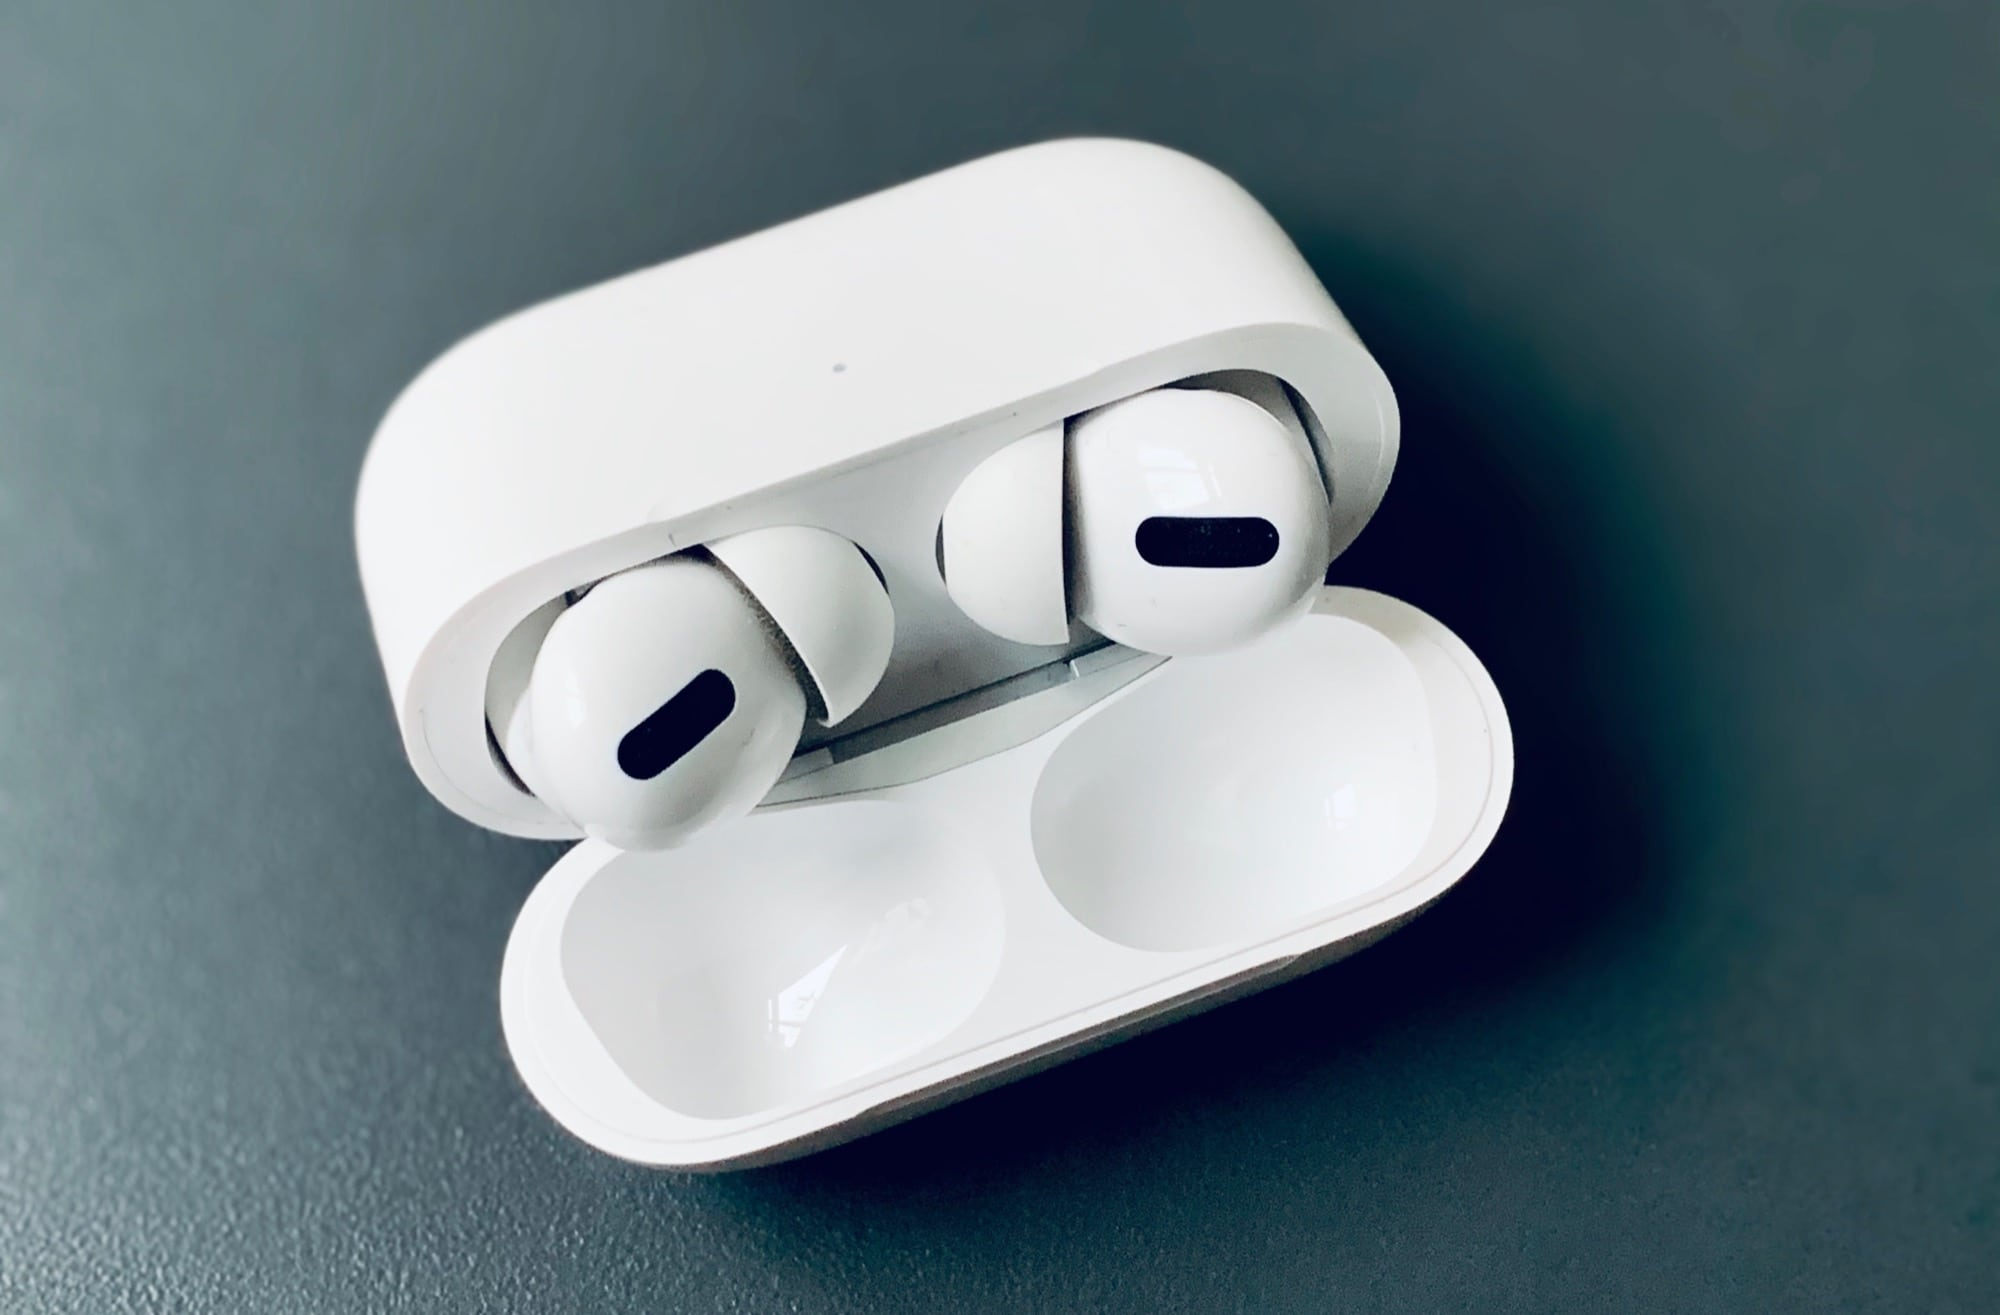 They AirPods Pro fit in their case like nothing ever happened.